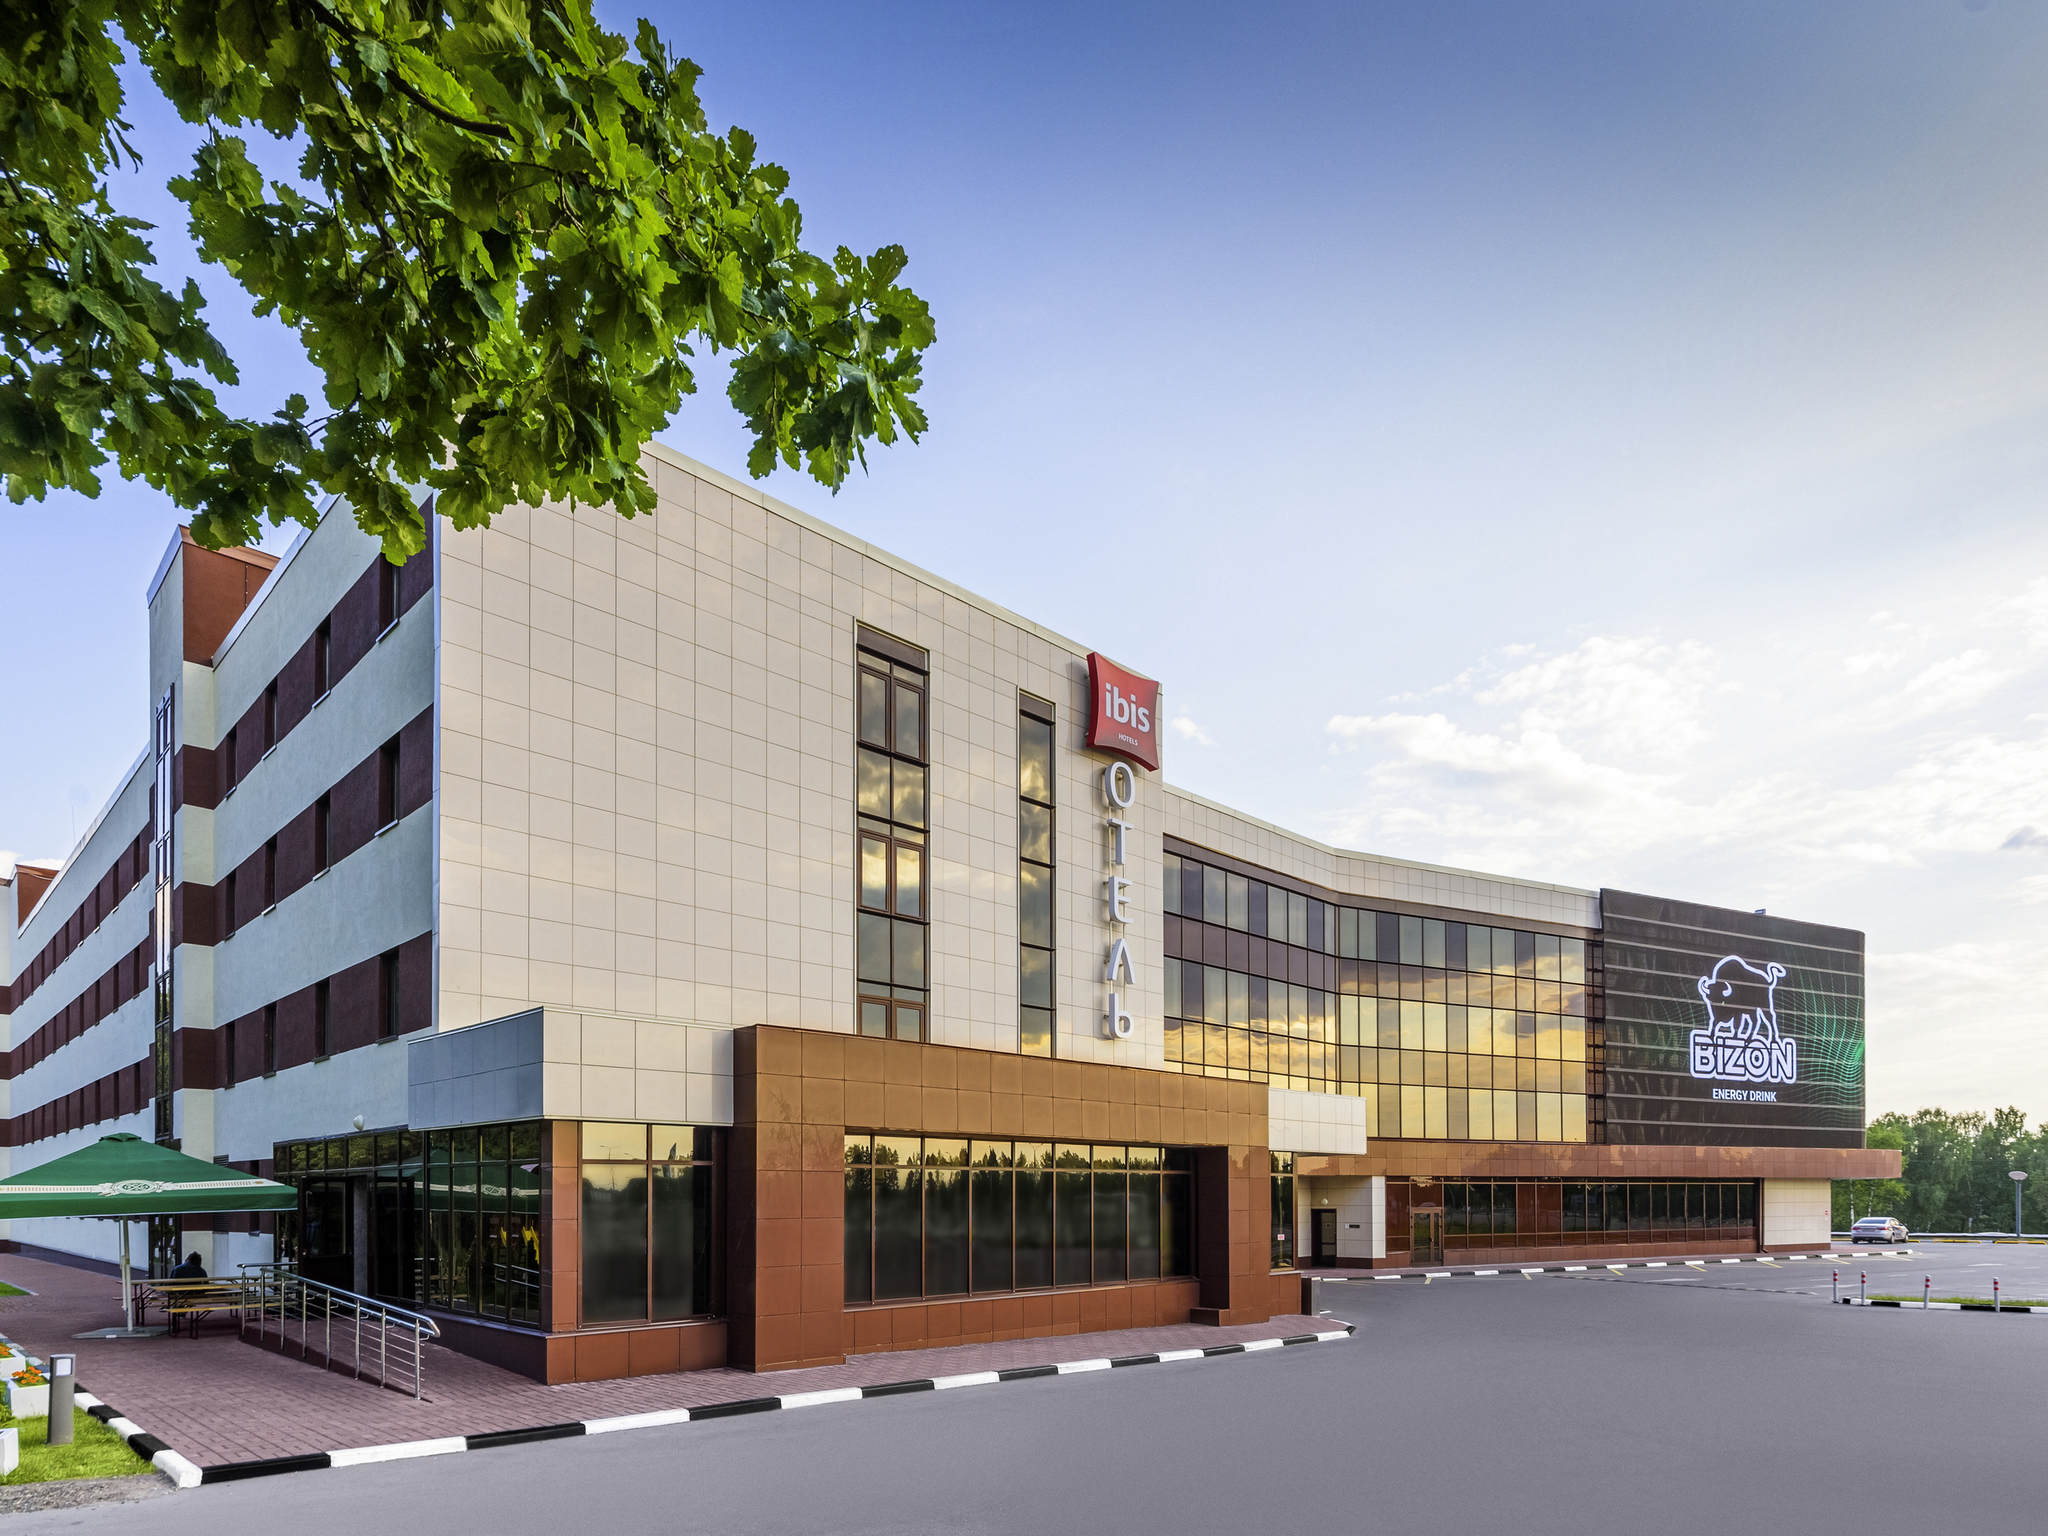 Hotel – ibis Moscow Domodedovo Airport